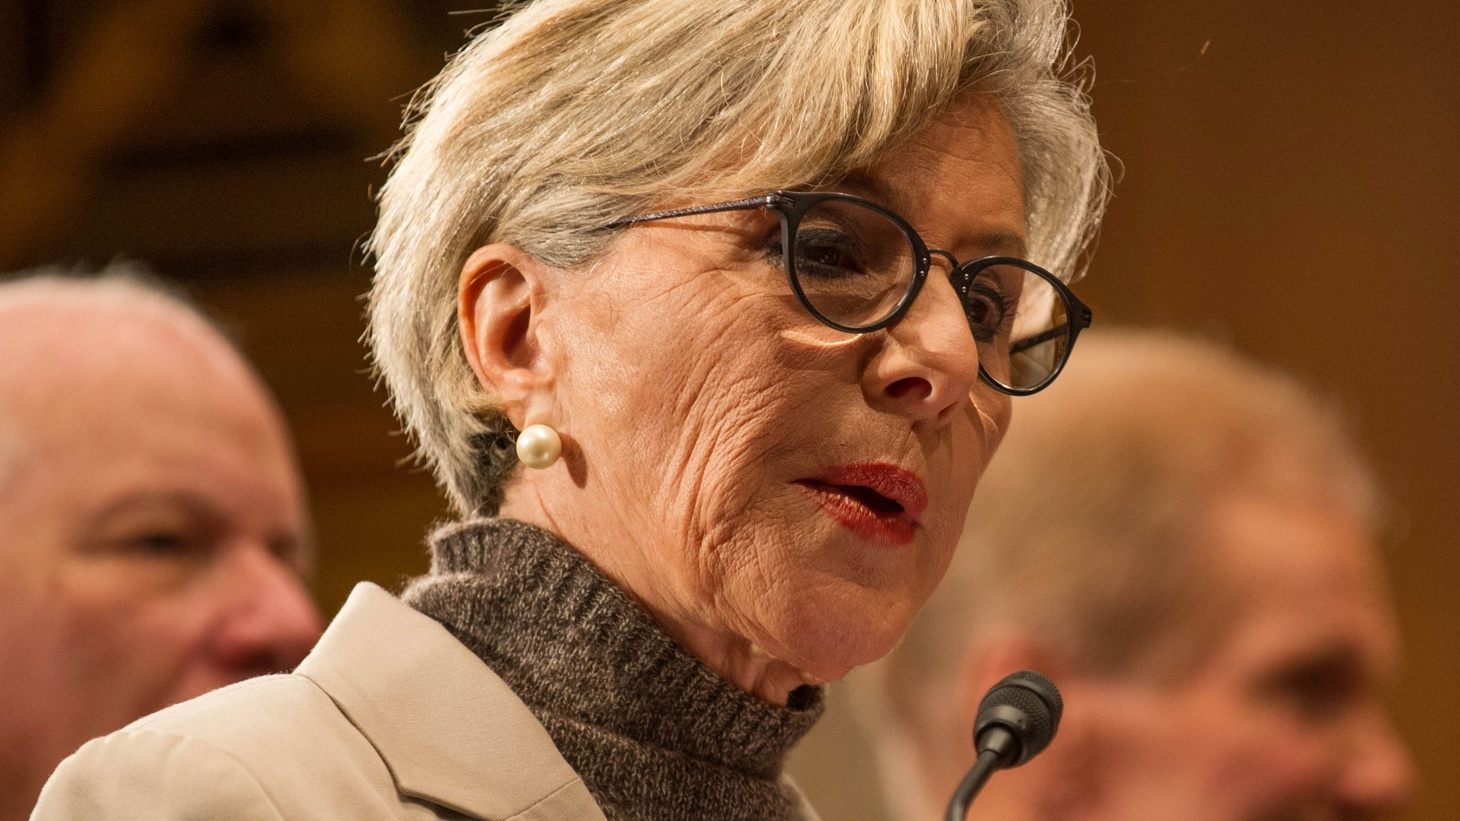 After 30 years in Washington, US Senator Barbara Boxer says it's time to come home, and she won't run for re-election next year.